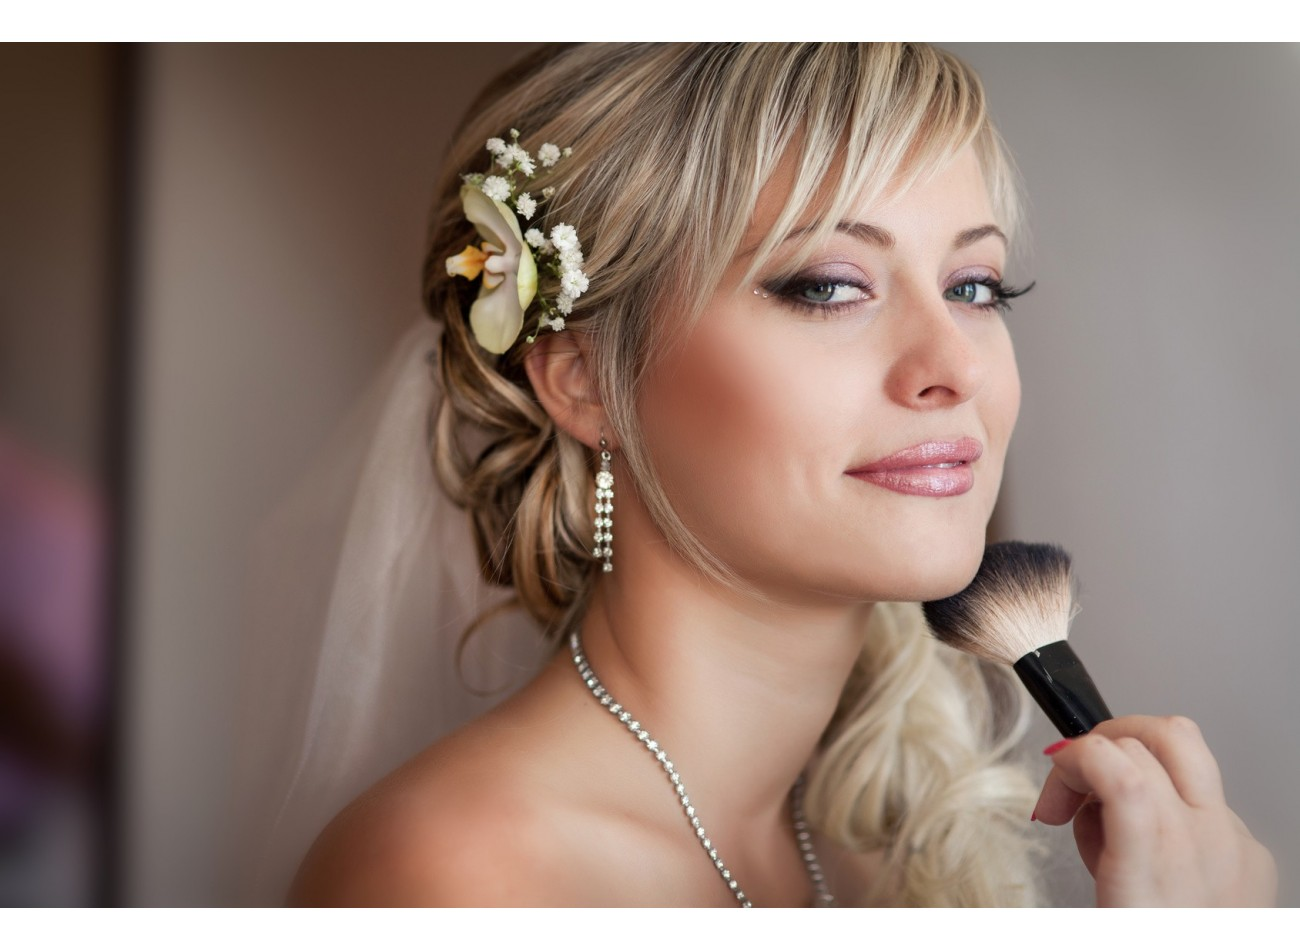 Coiffure Domicile Valenciennes Maquillage Mariage Tournai